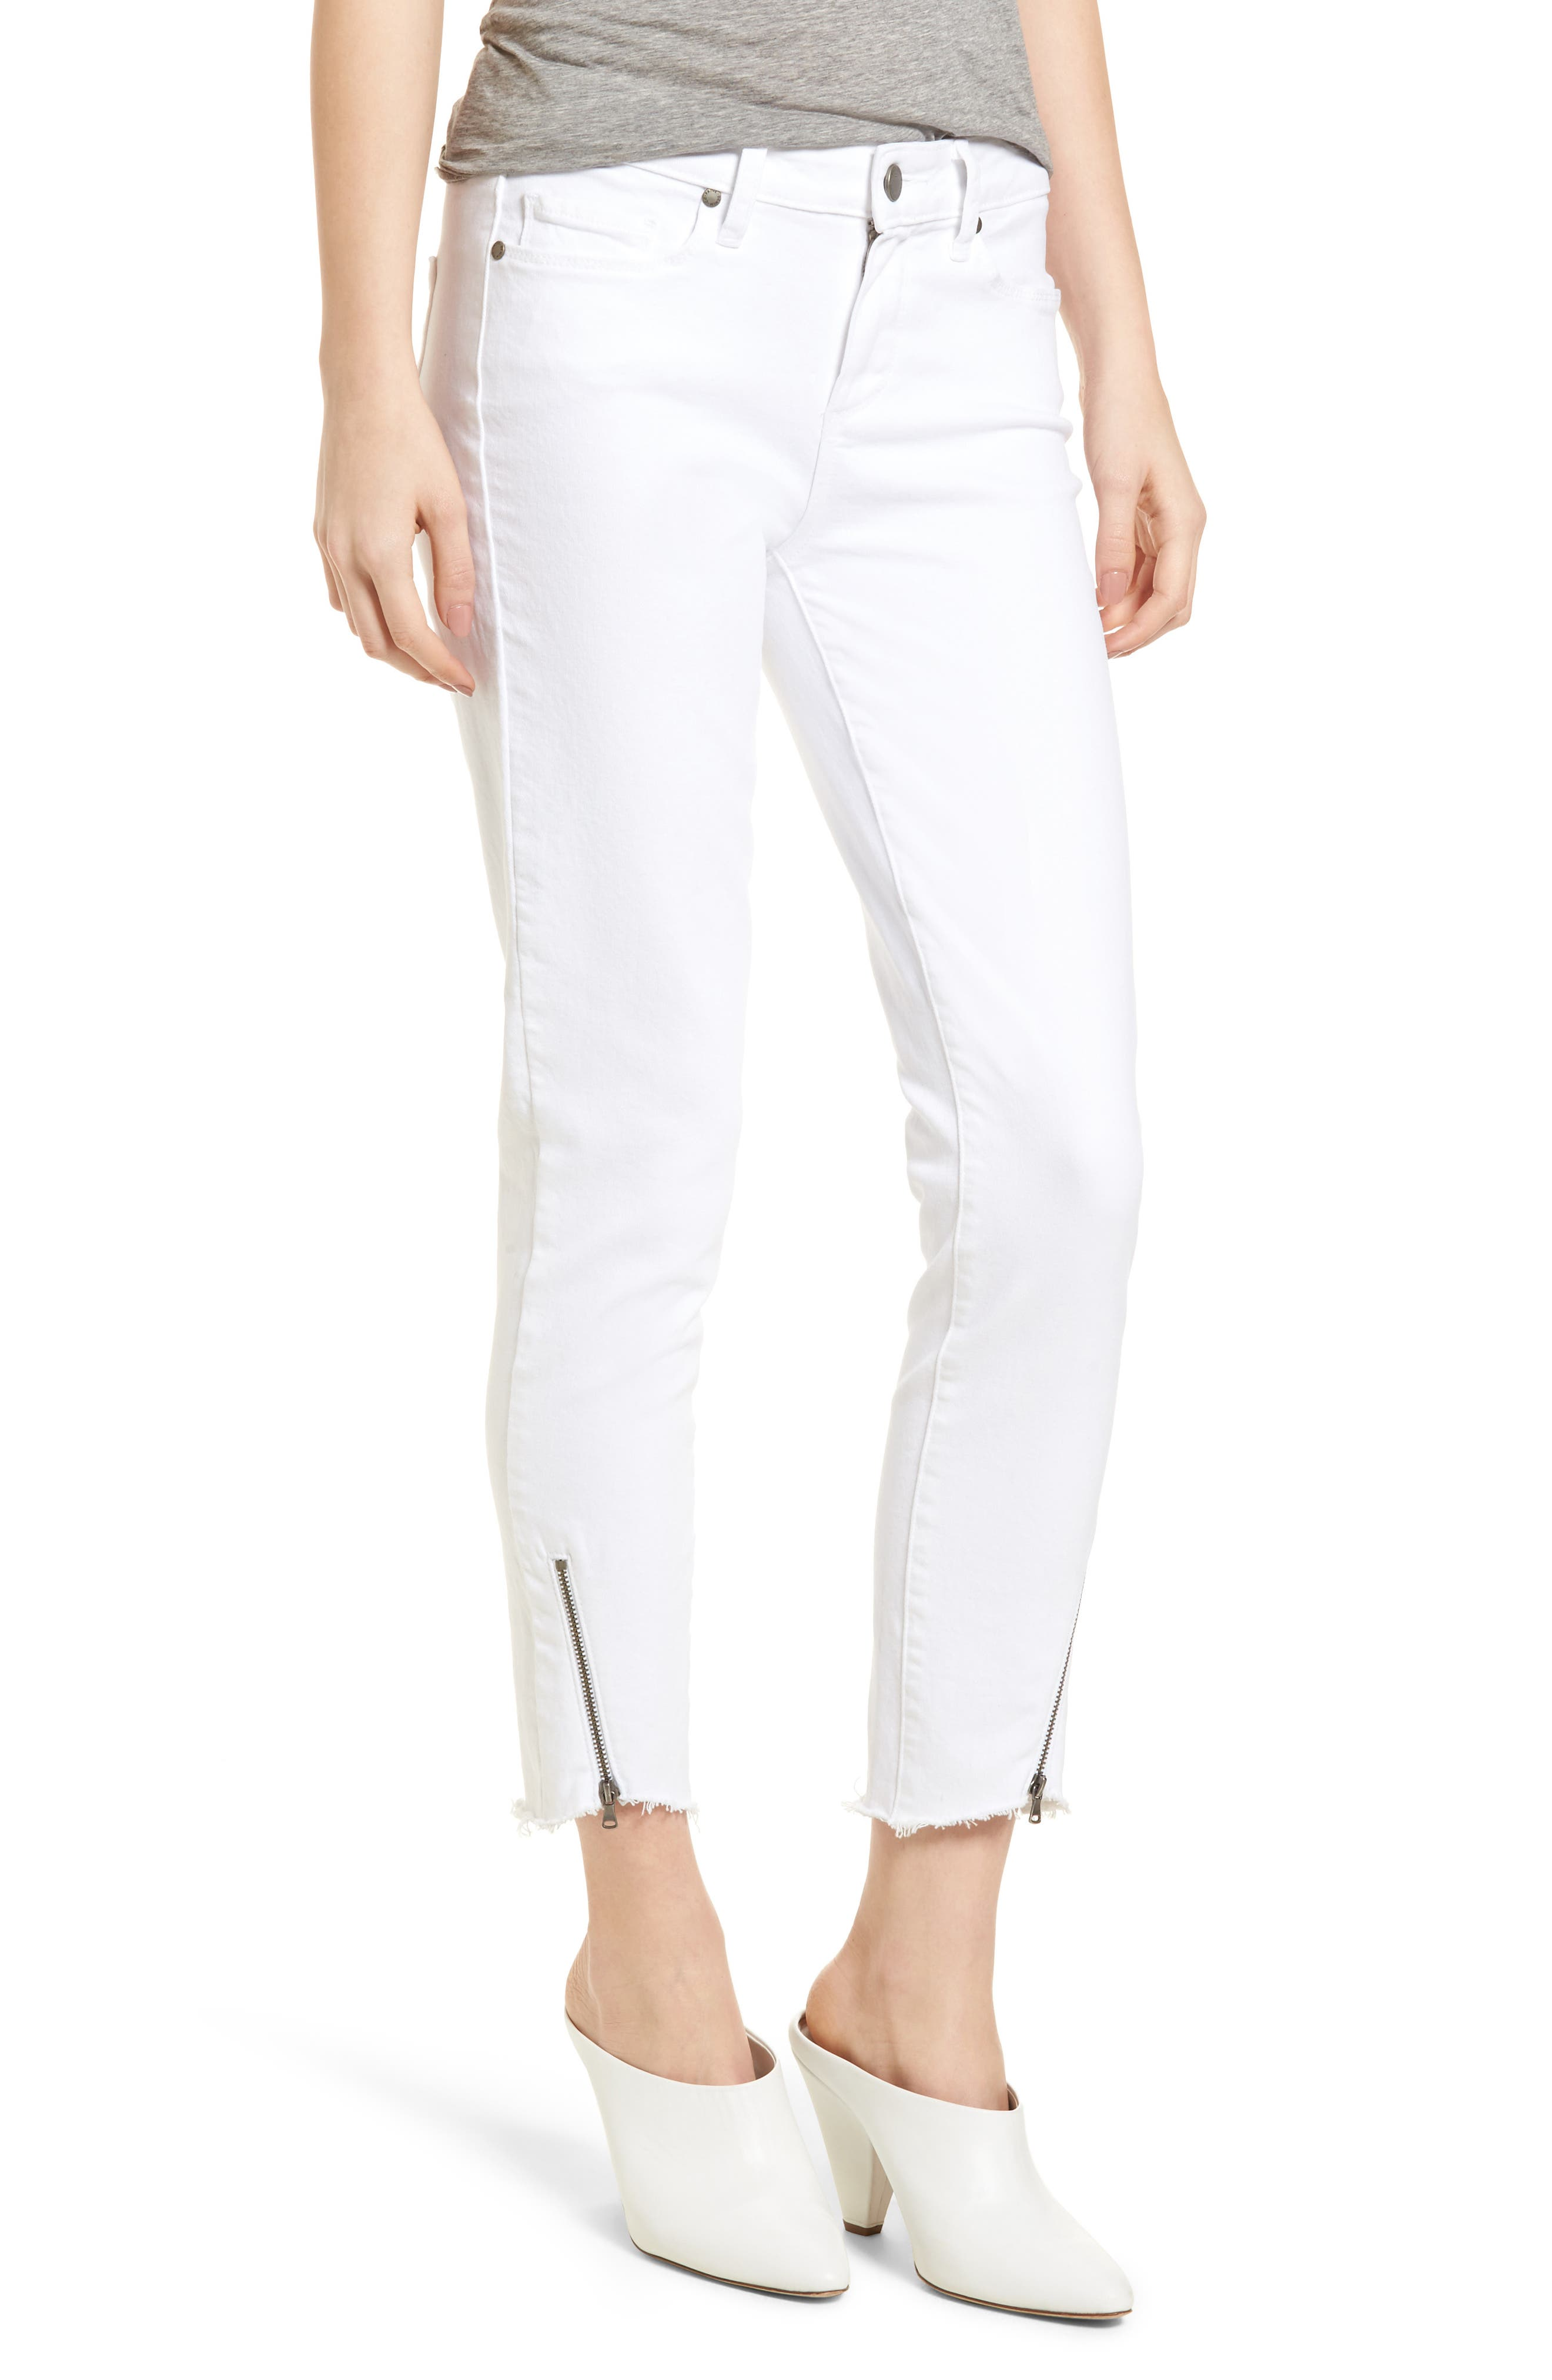 Verdugo Crop Ultra Skinny Jeans,                             Main thumbnail 1, color,                             100